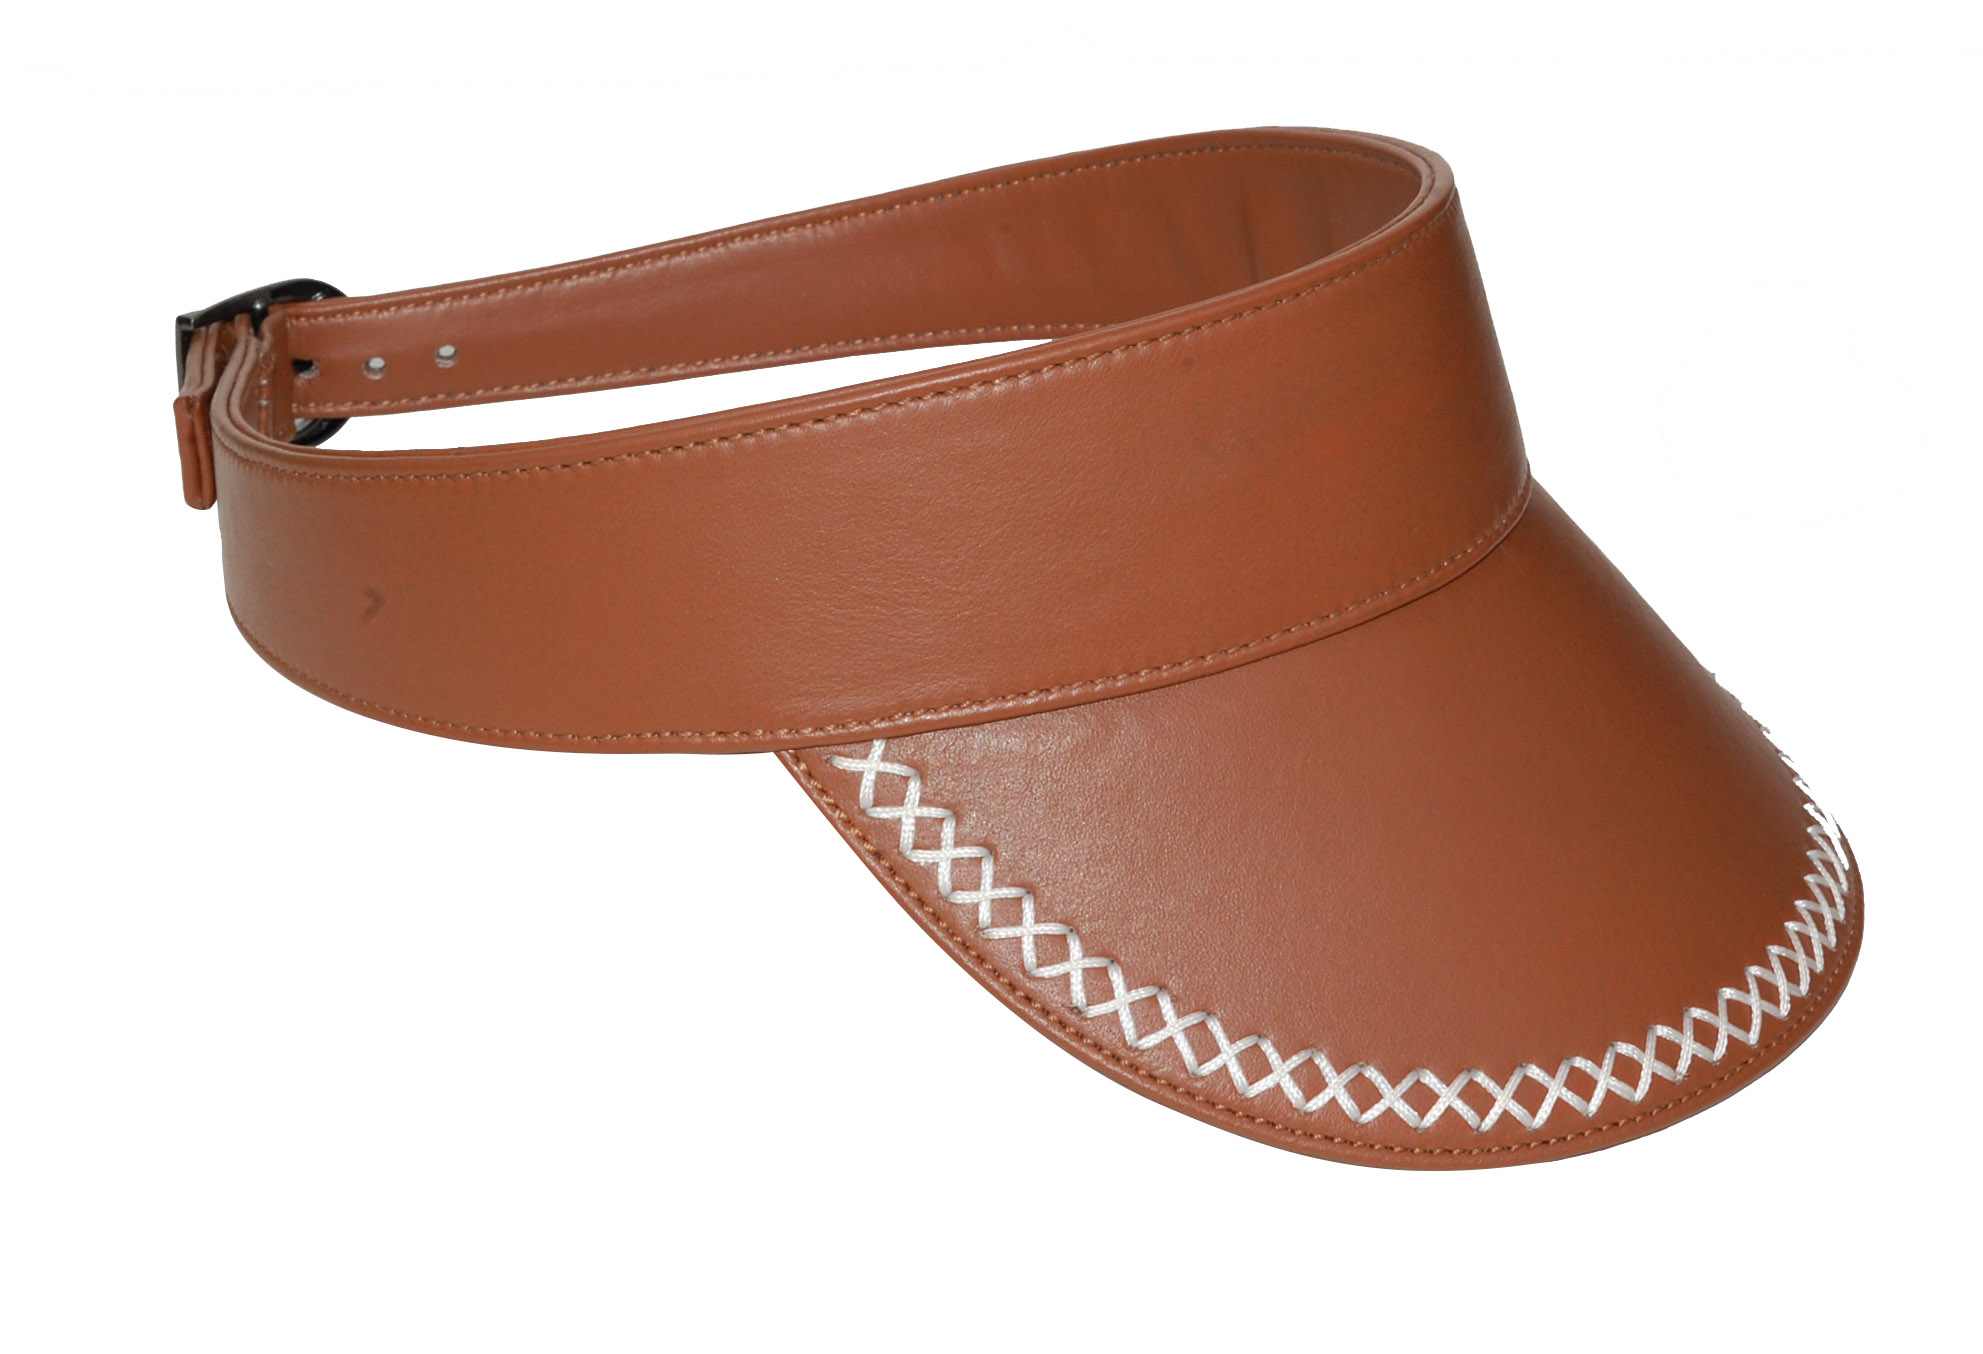 Women's Leather Sun Hat Visor with back side Adjustable Buckle